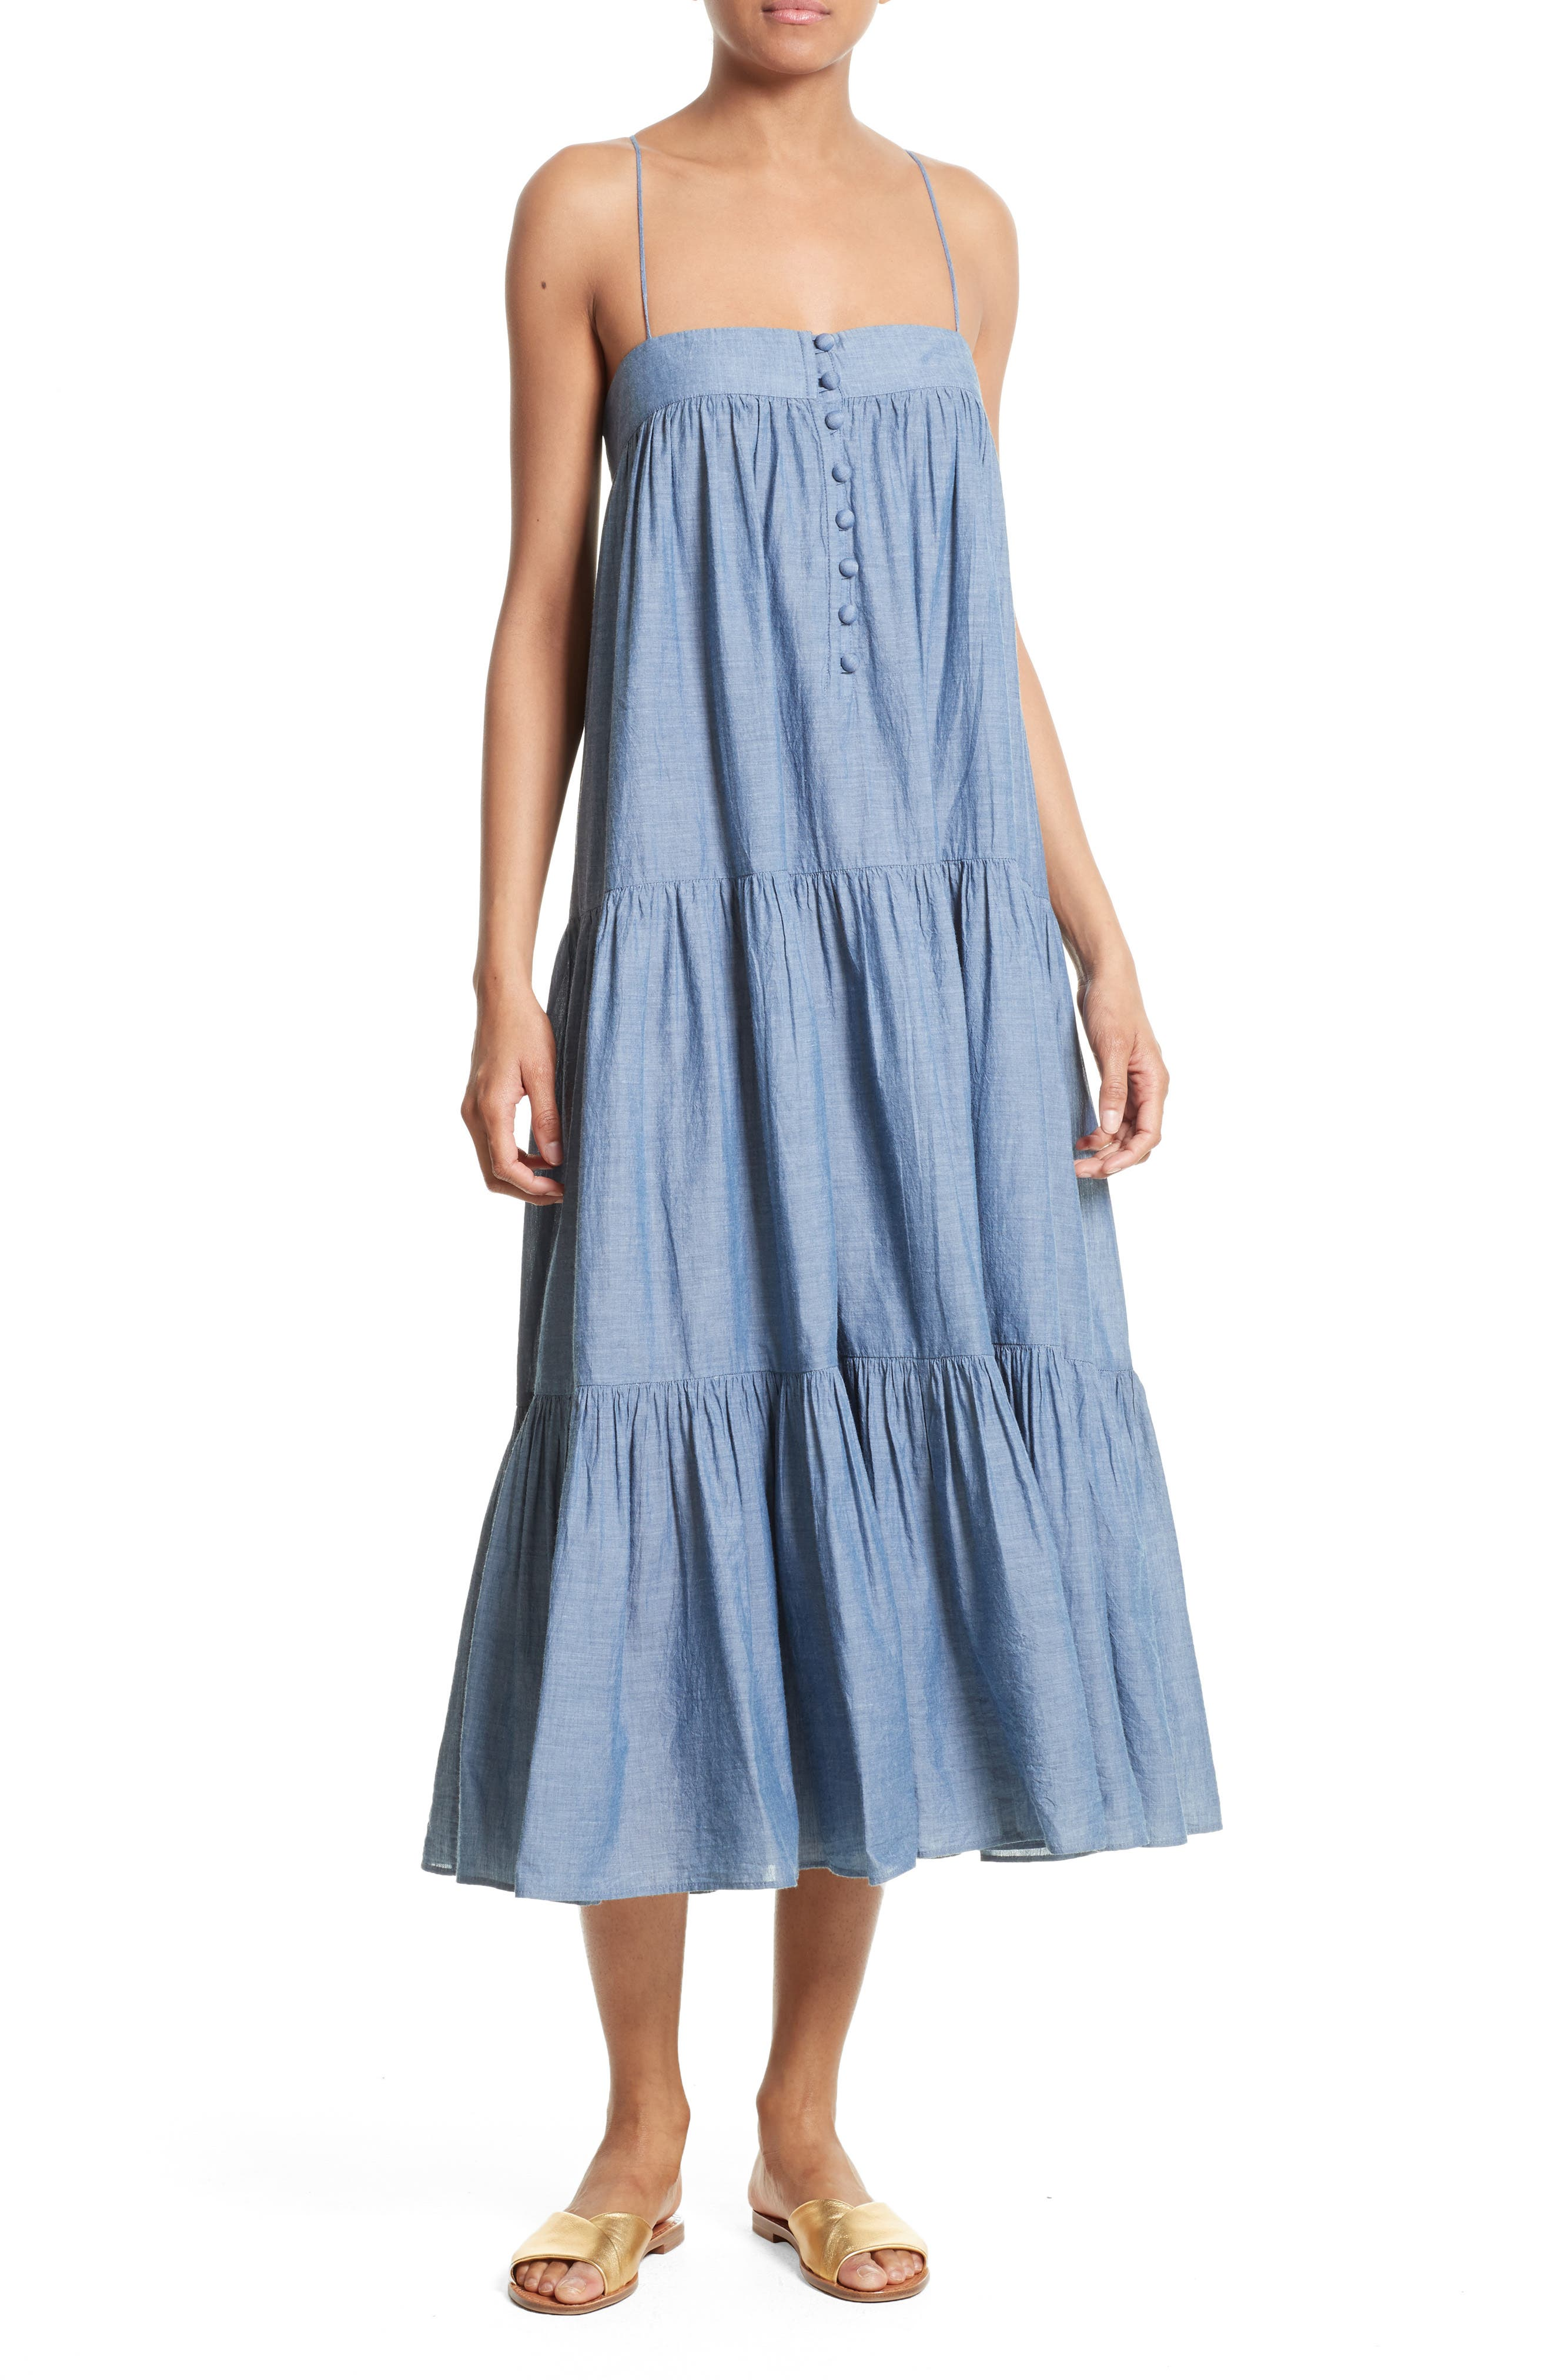 Alternate Image 1 Selected - Apiece Apart Tangiers Chambray Dress